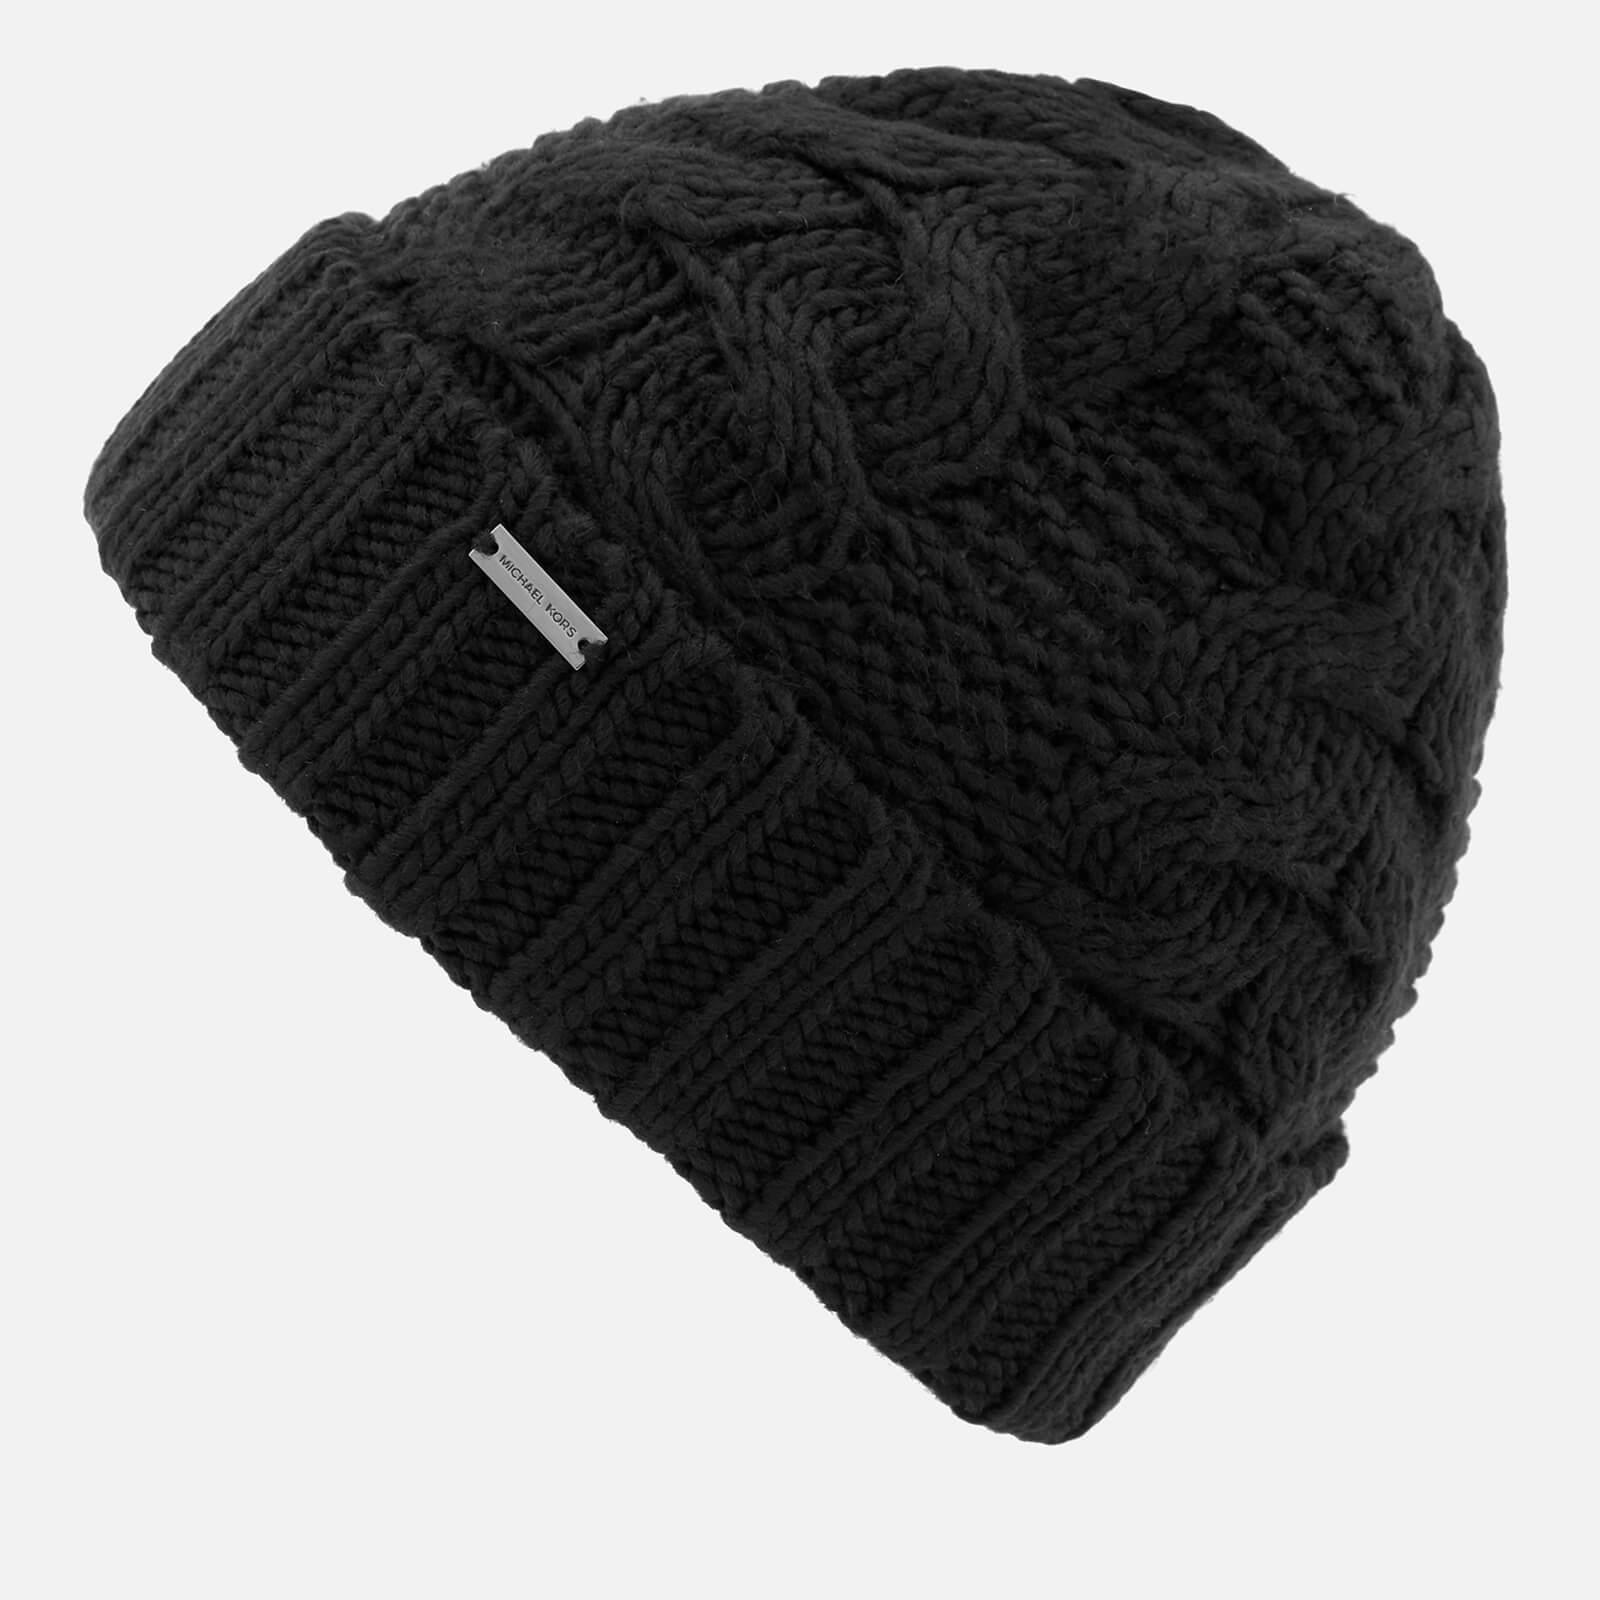 89f2dc0a9cd Michael Kors Link Cable Cuff Hat in Black for Men - Lyst